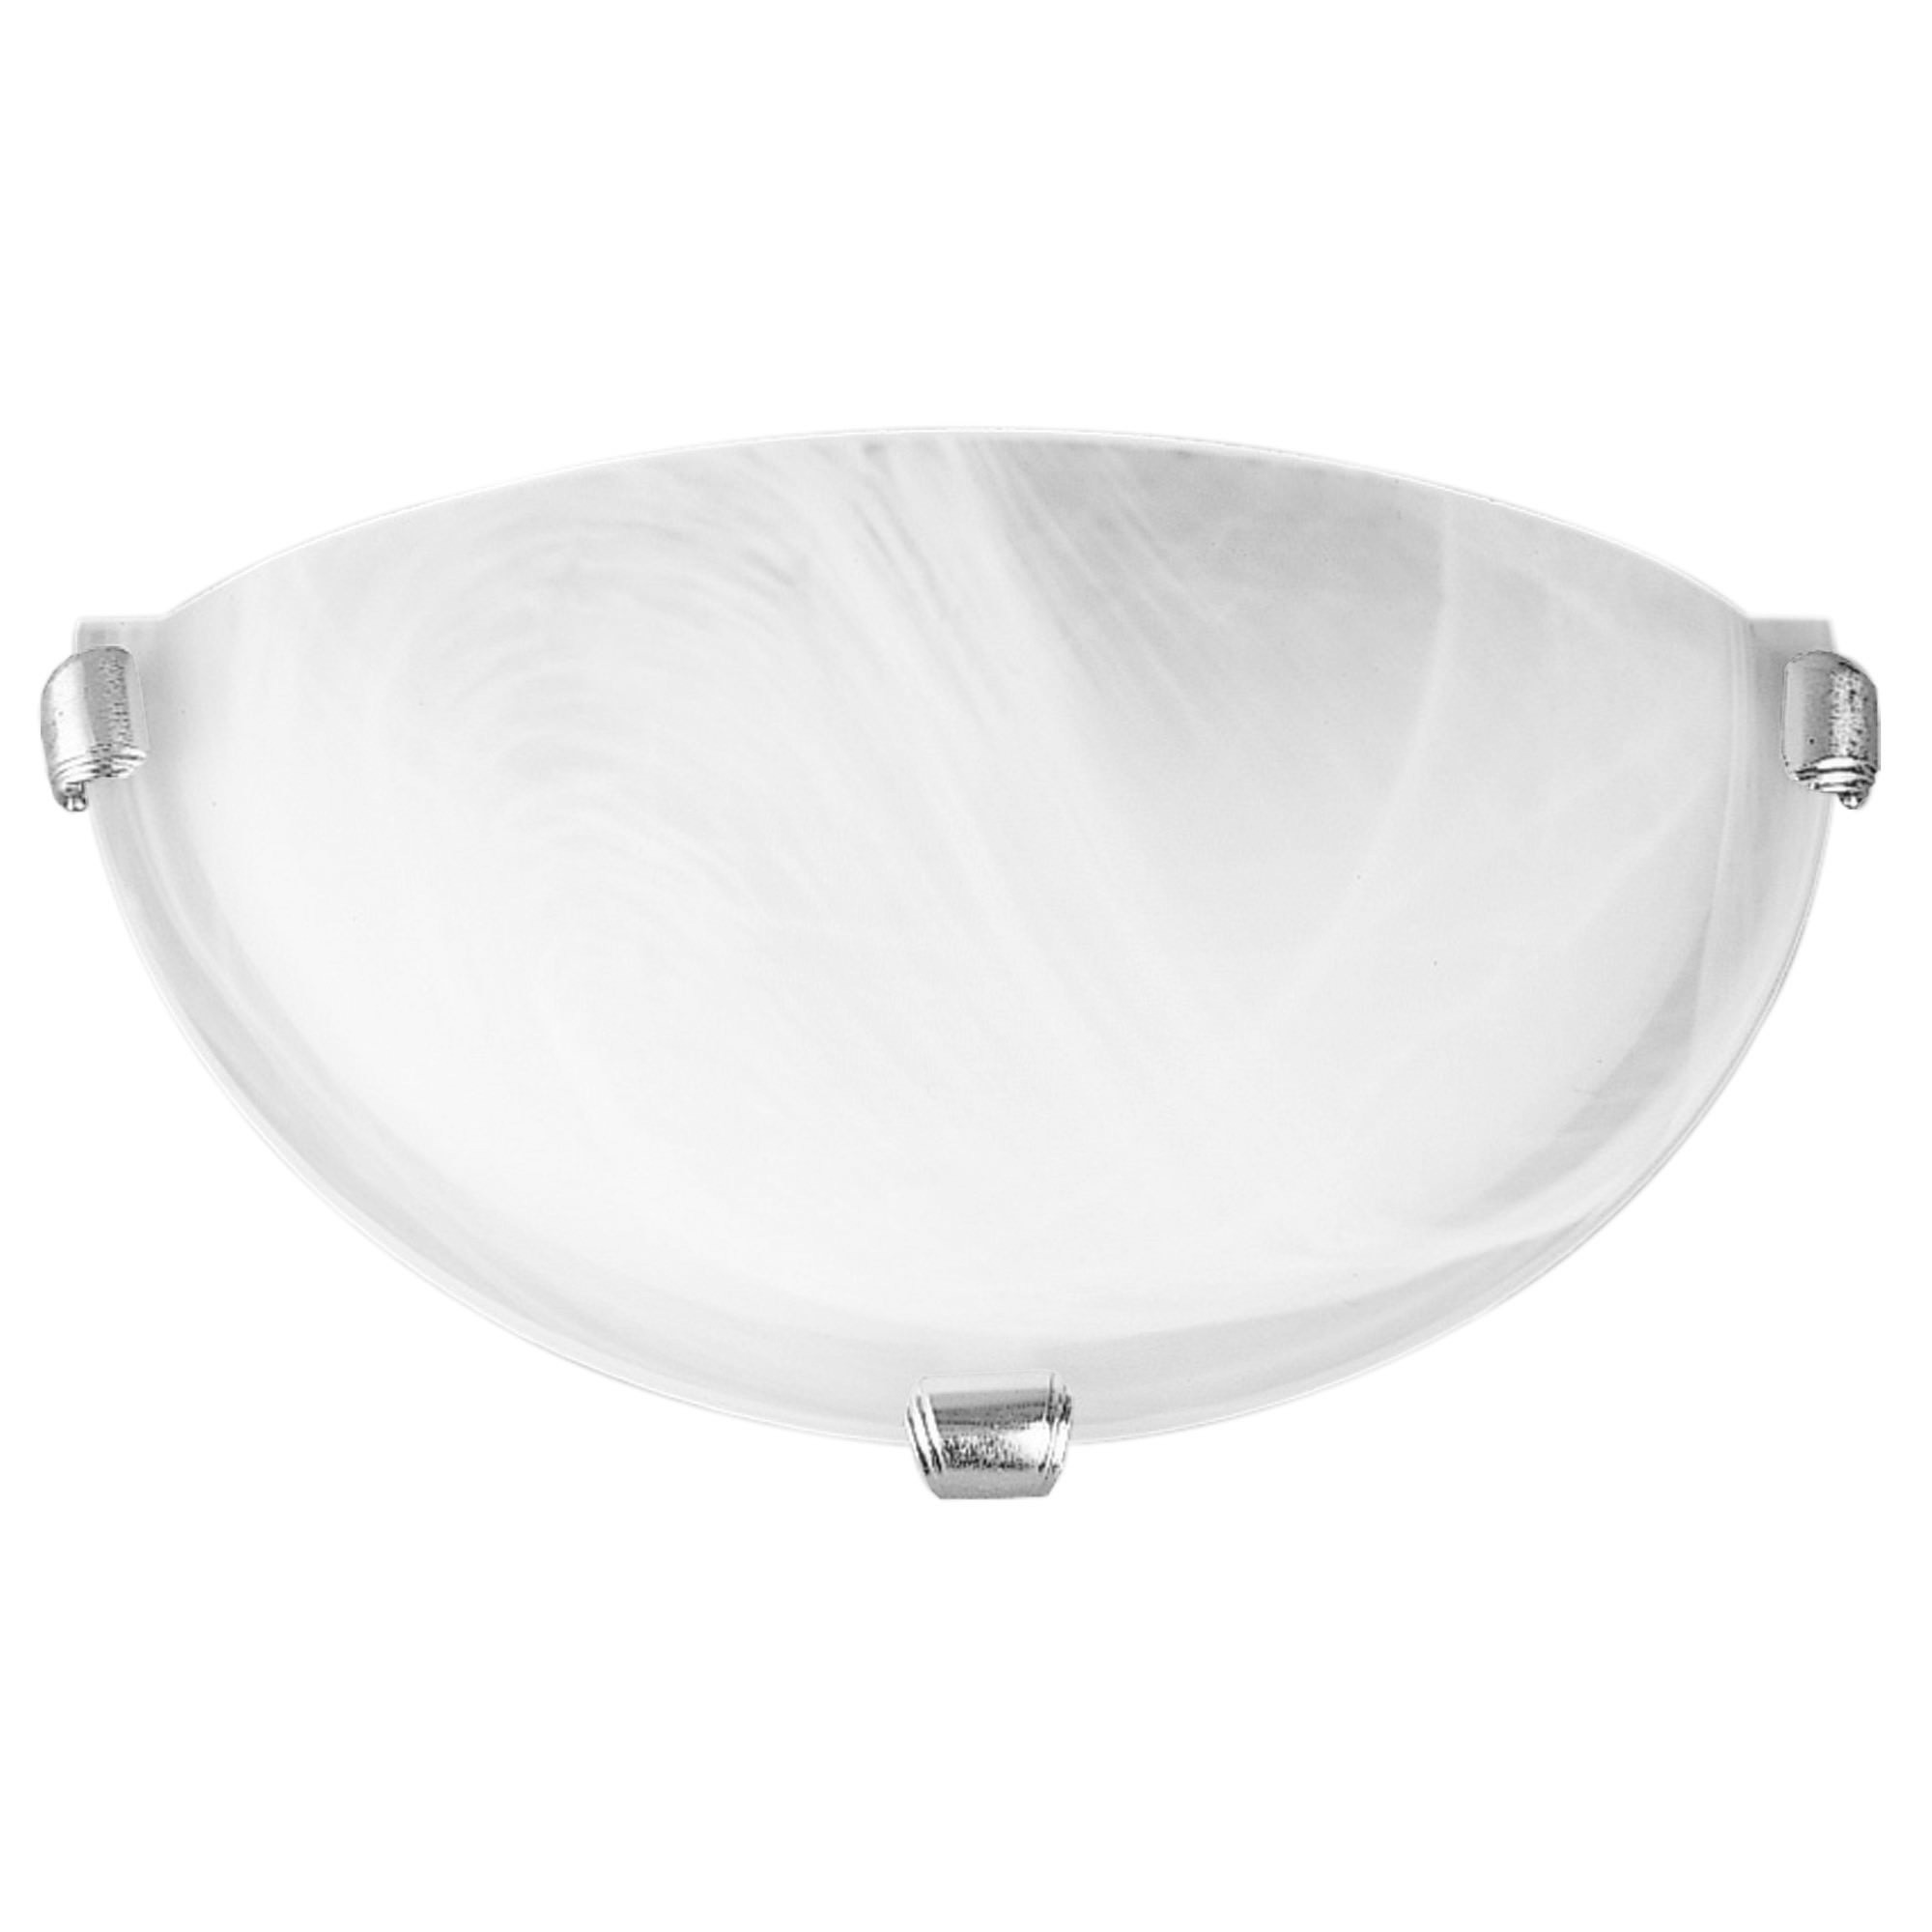 Remo Alabaster Glass Wall Light, Brushed Chrome